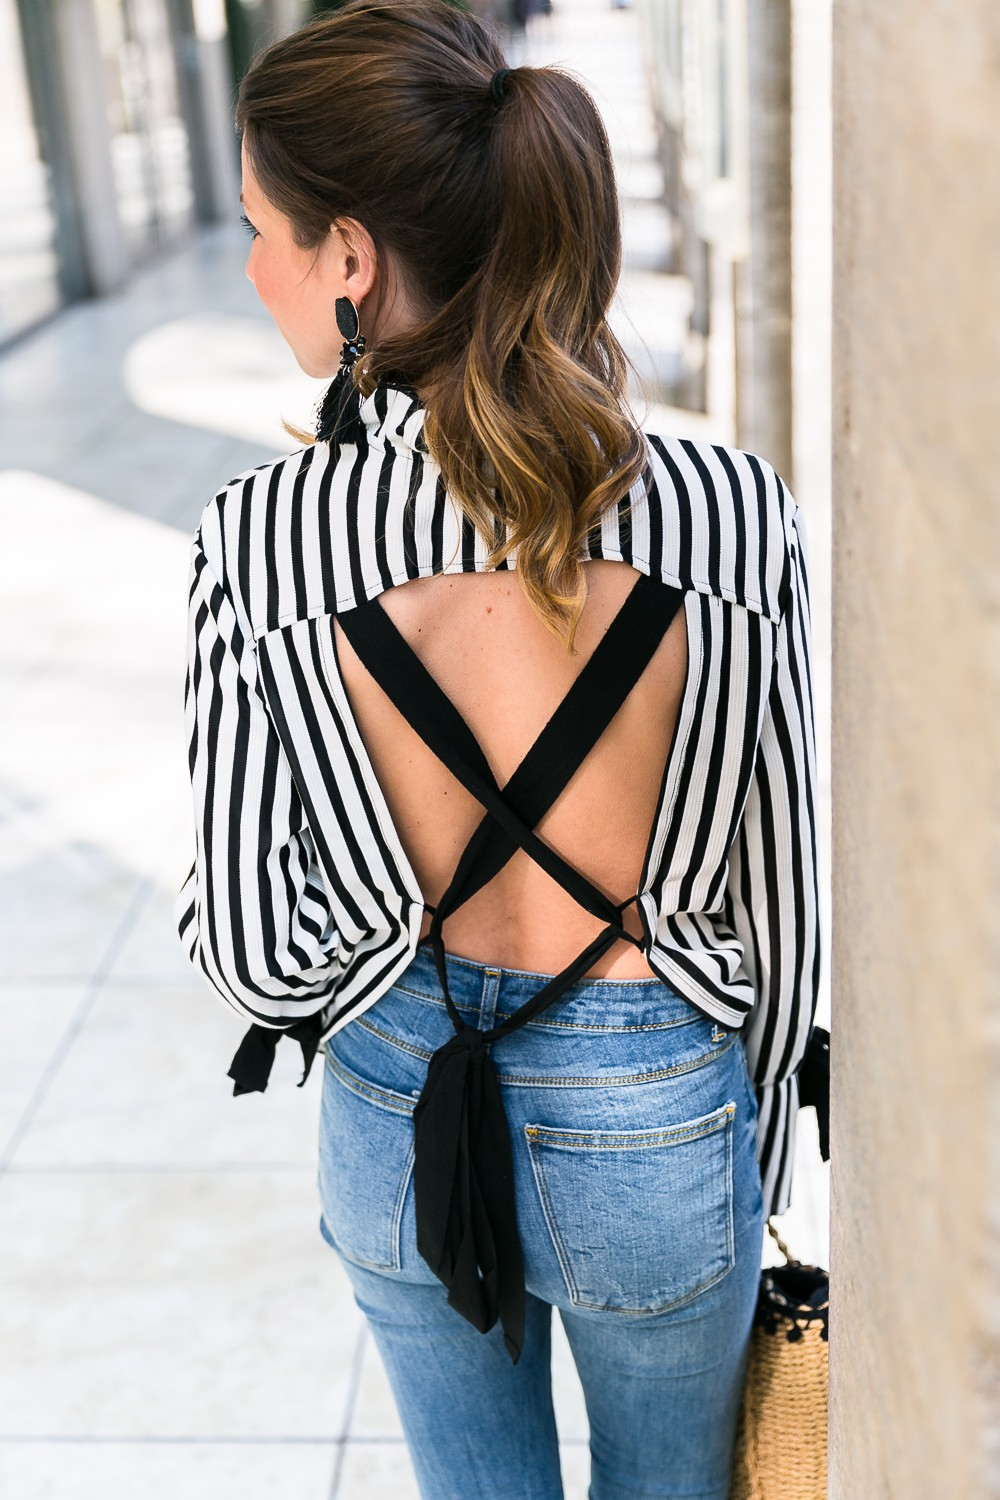 statement sleeves stripes top earrings zara jeans flats basket bag casual chic outfit modeblog 4